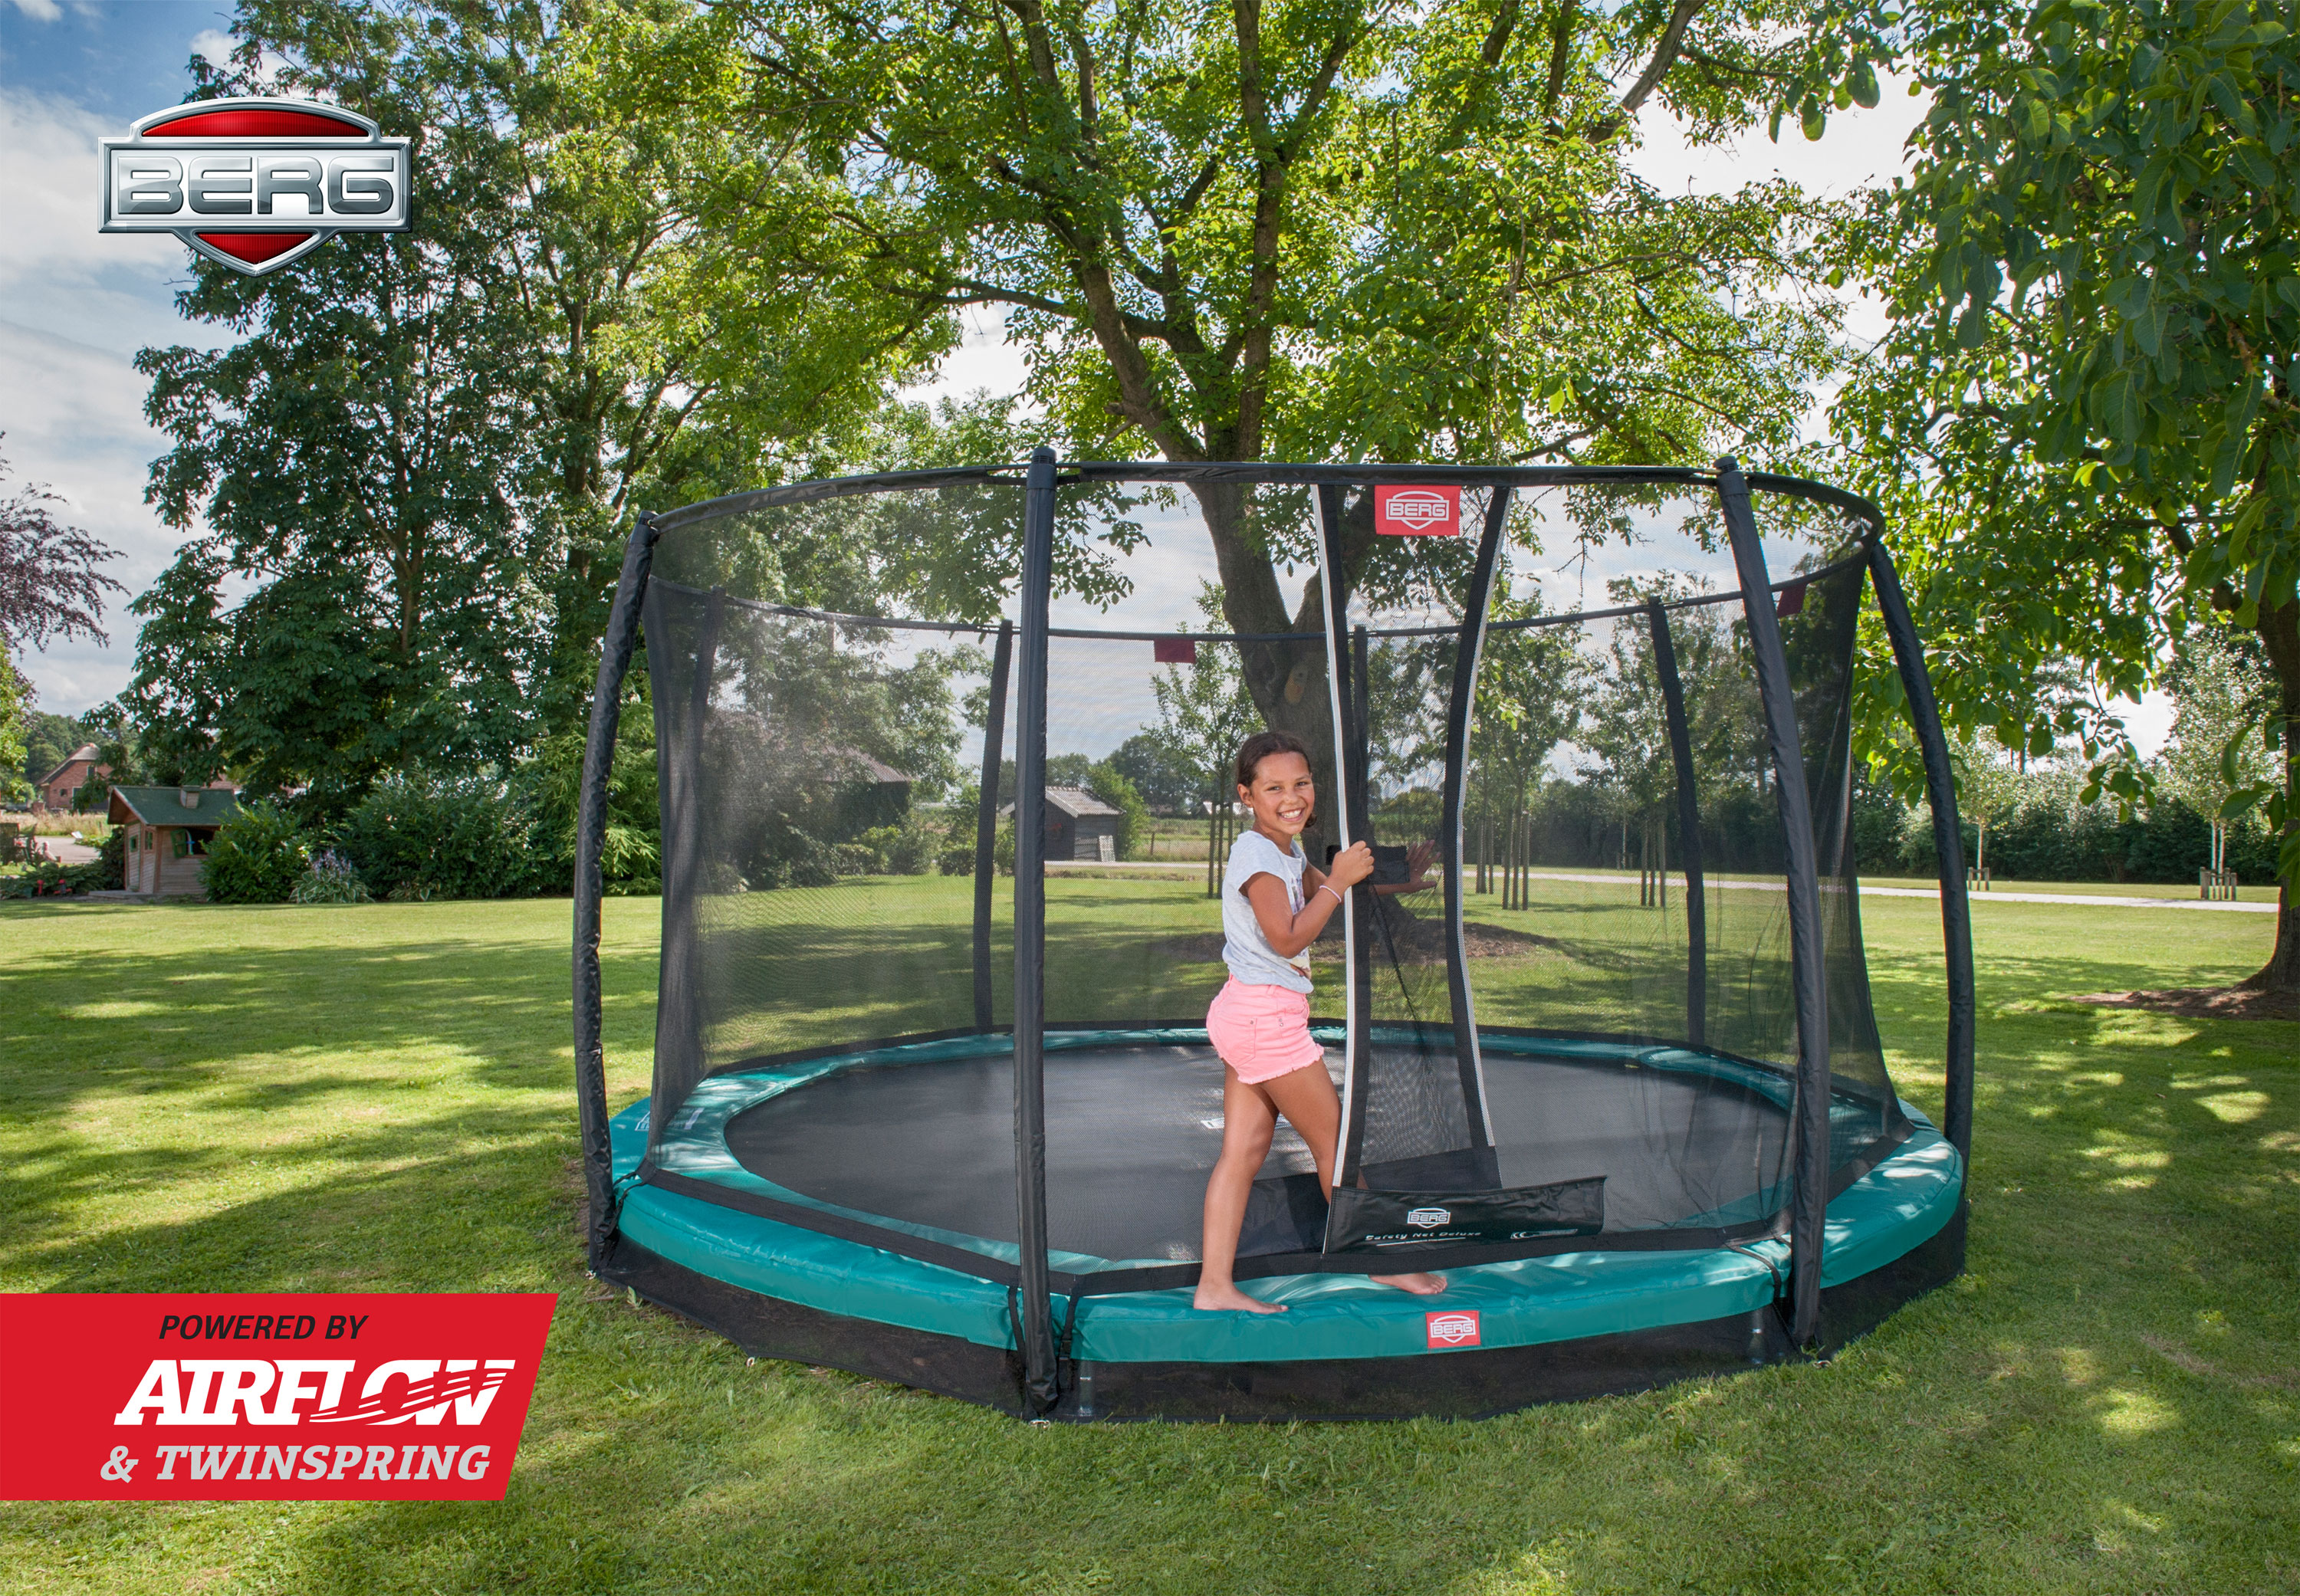 Trampolin InGround Champion grün + Netz Deluxe Ø380cm BERG toys Bild 4